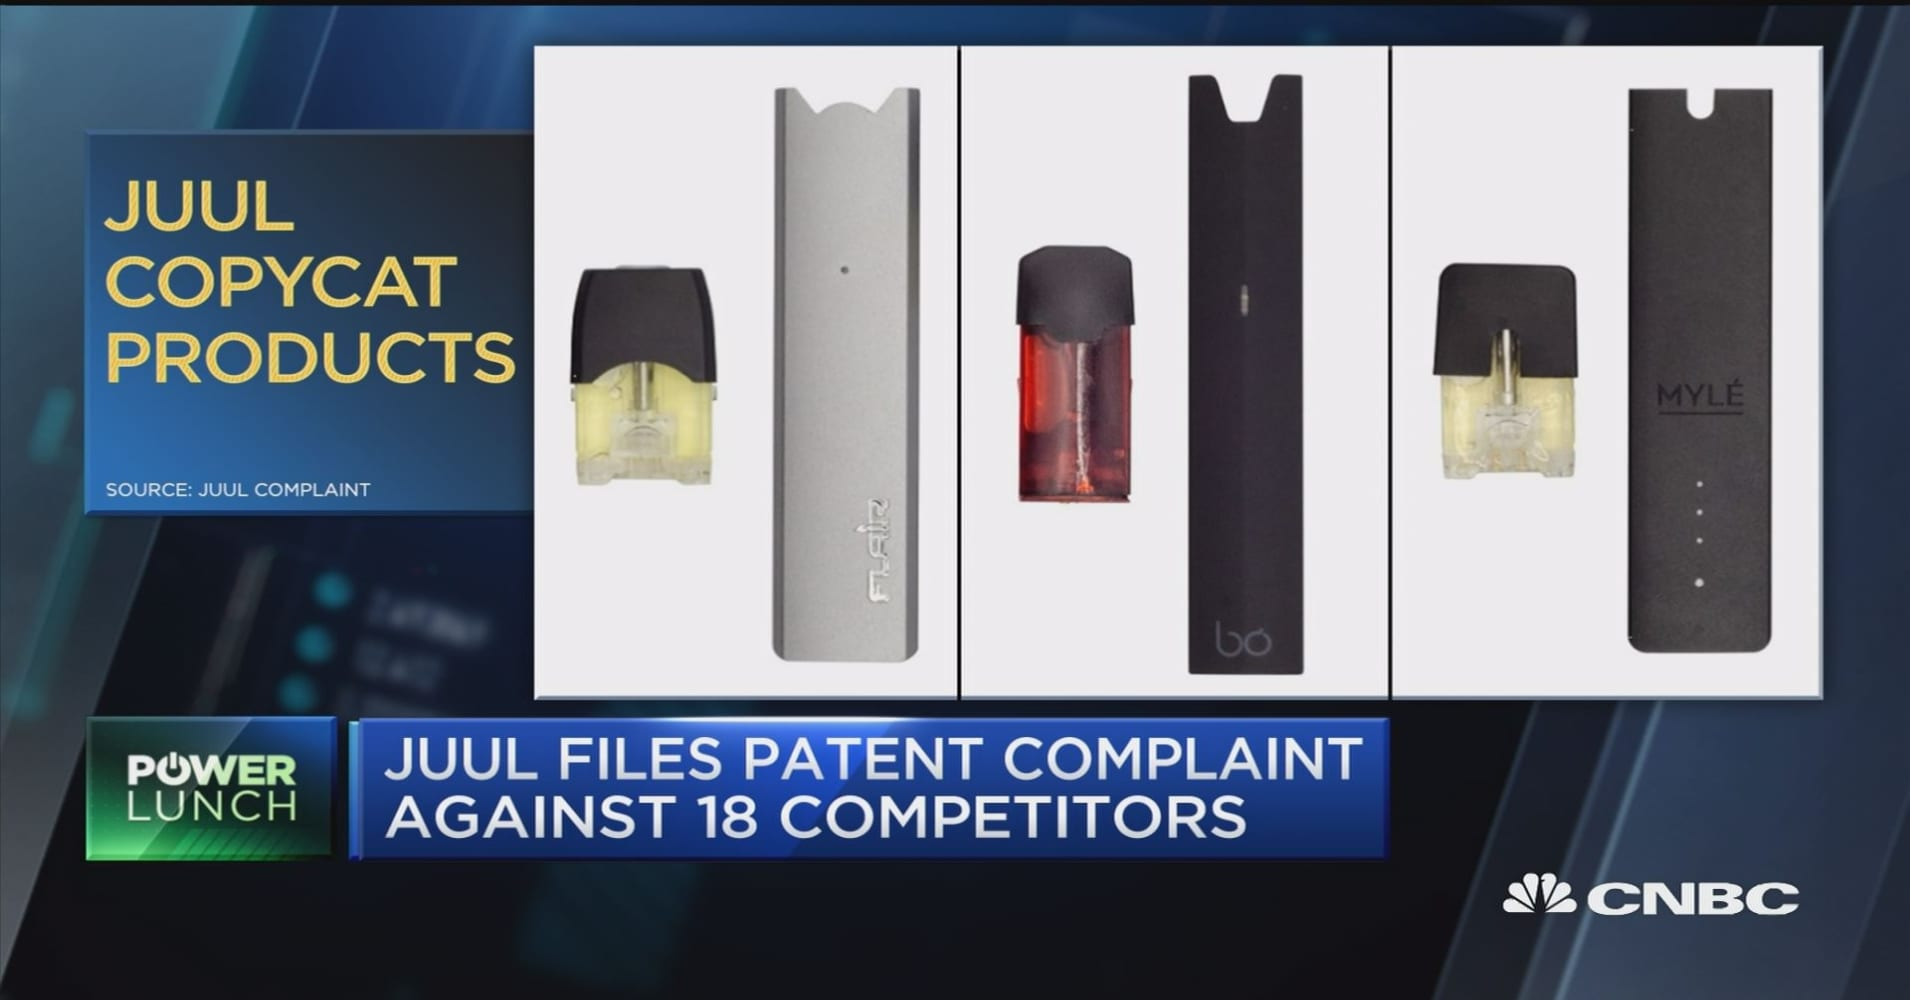 Juul files patent complaint against 18 competitors